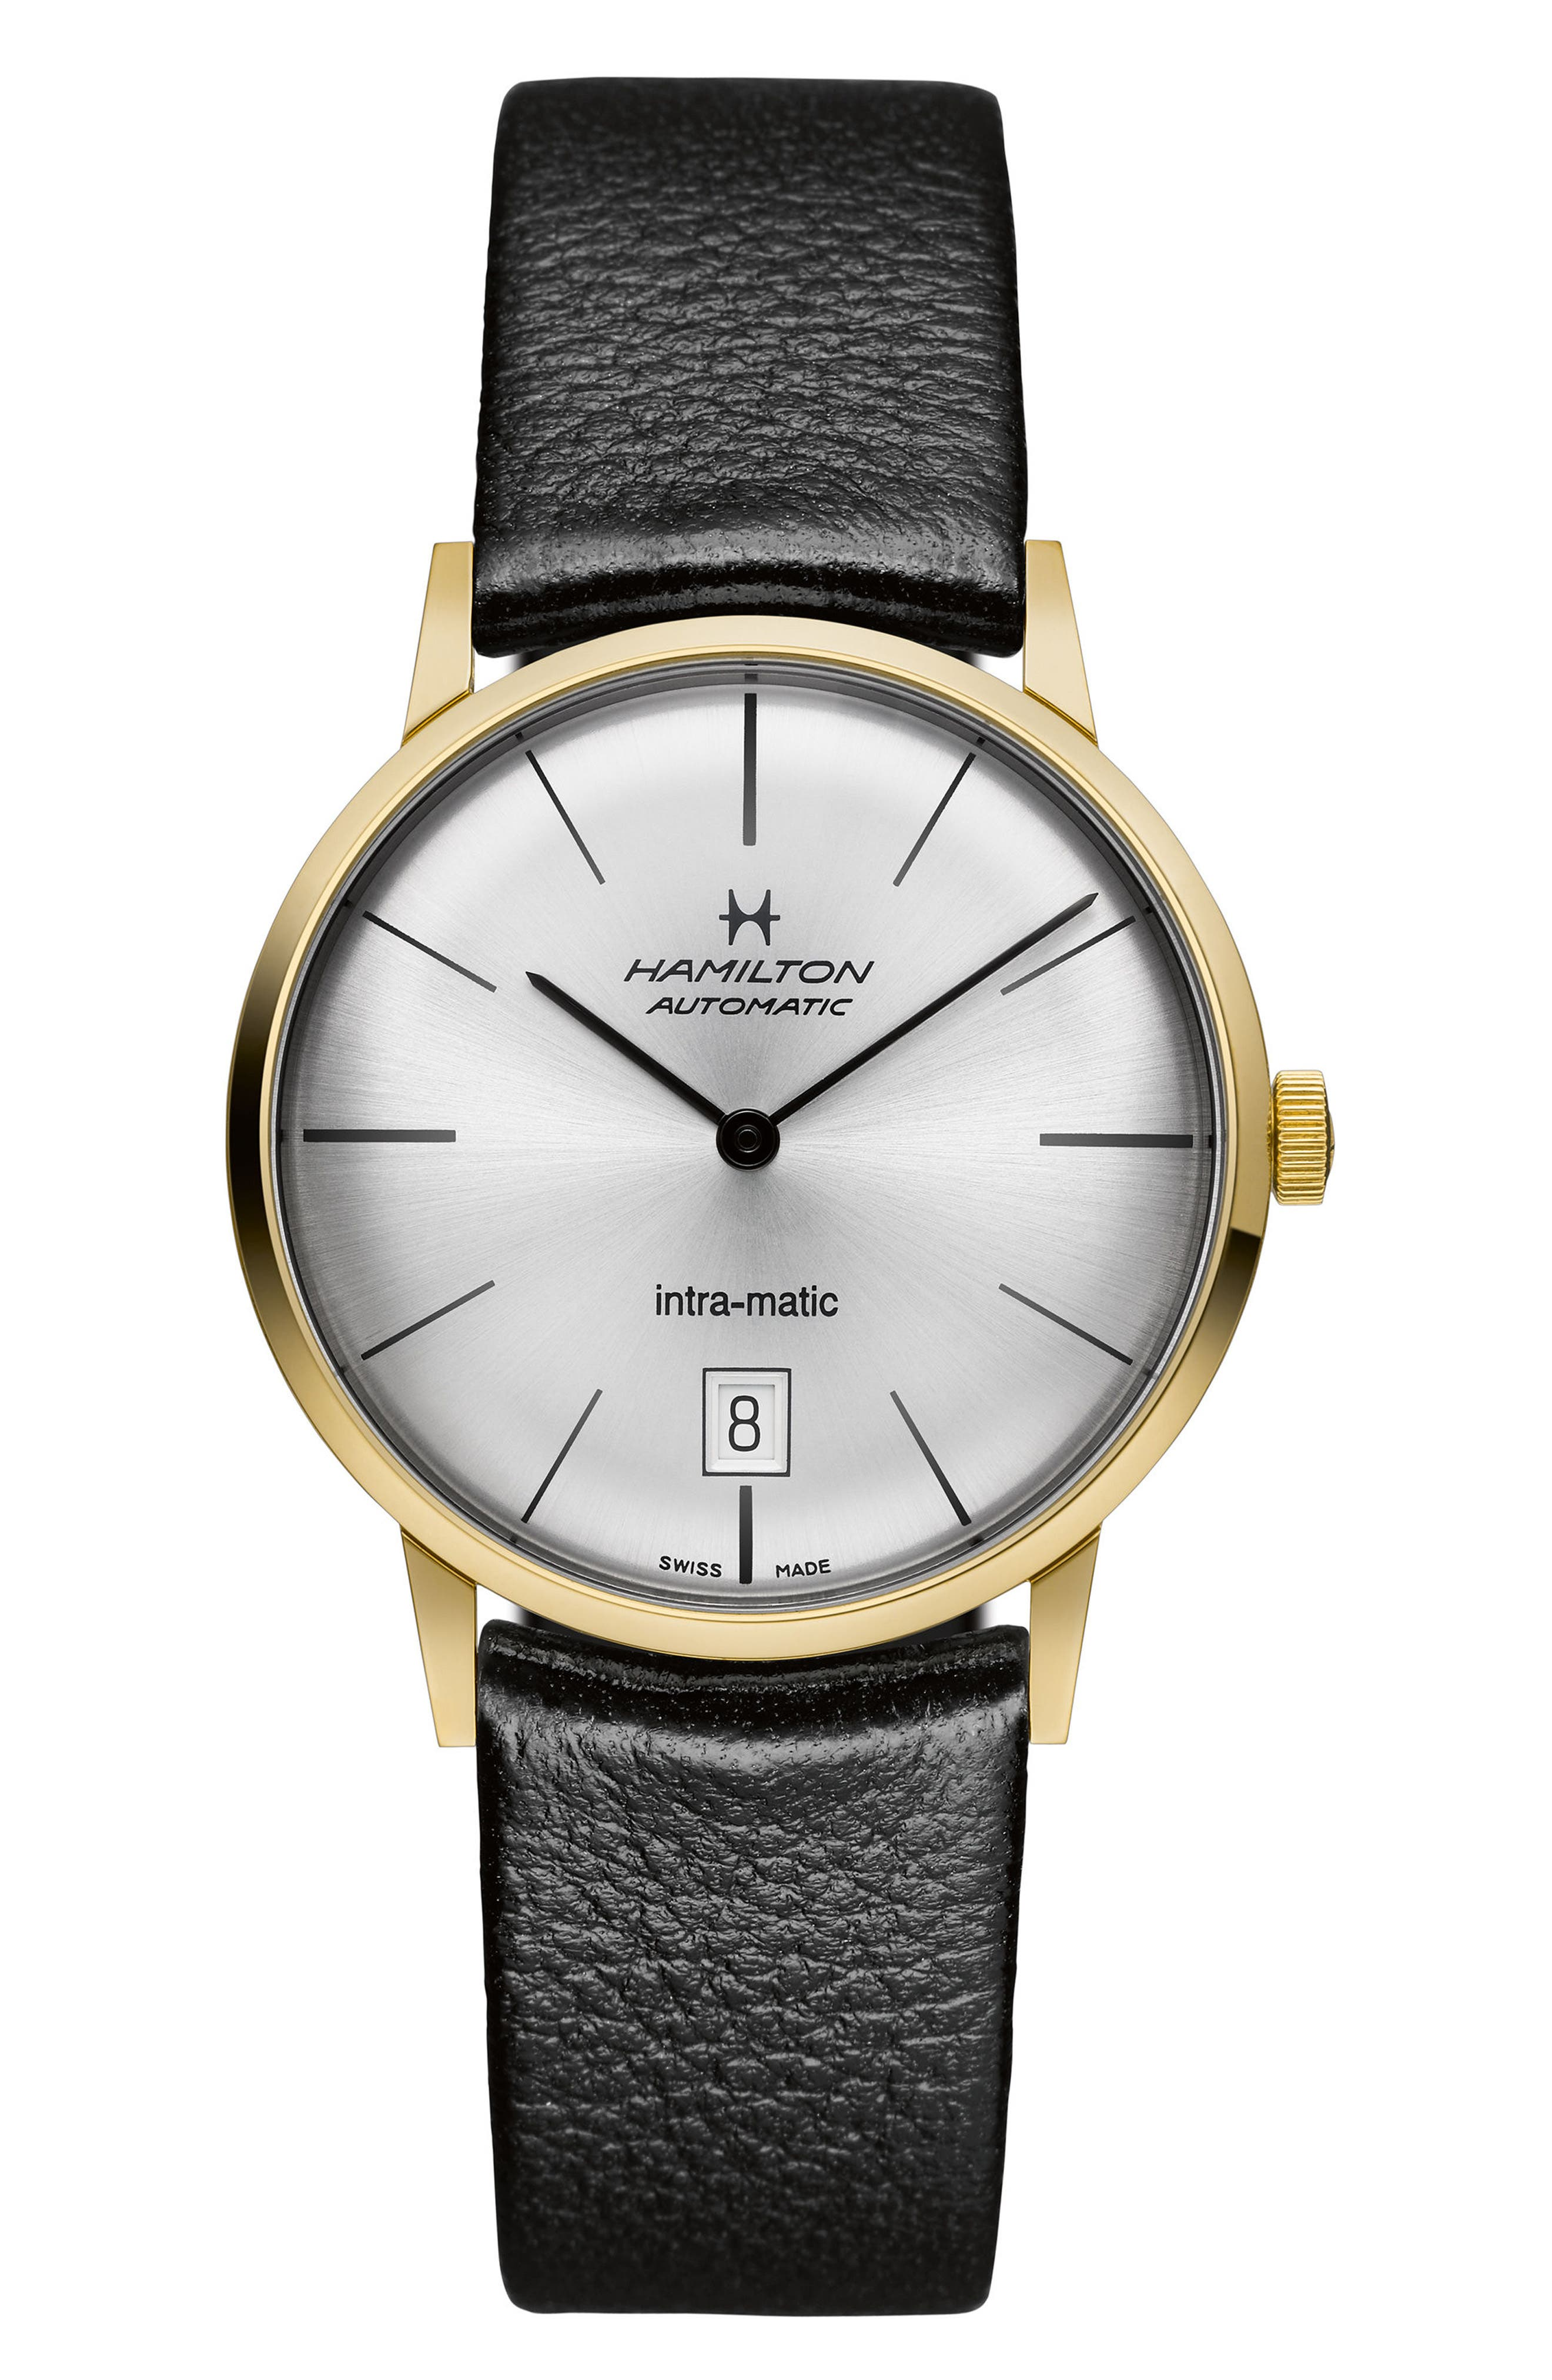 Hamilton American Classic Intra-Matic Automatic Leather Strap Watch, 38mm